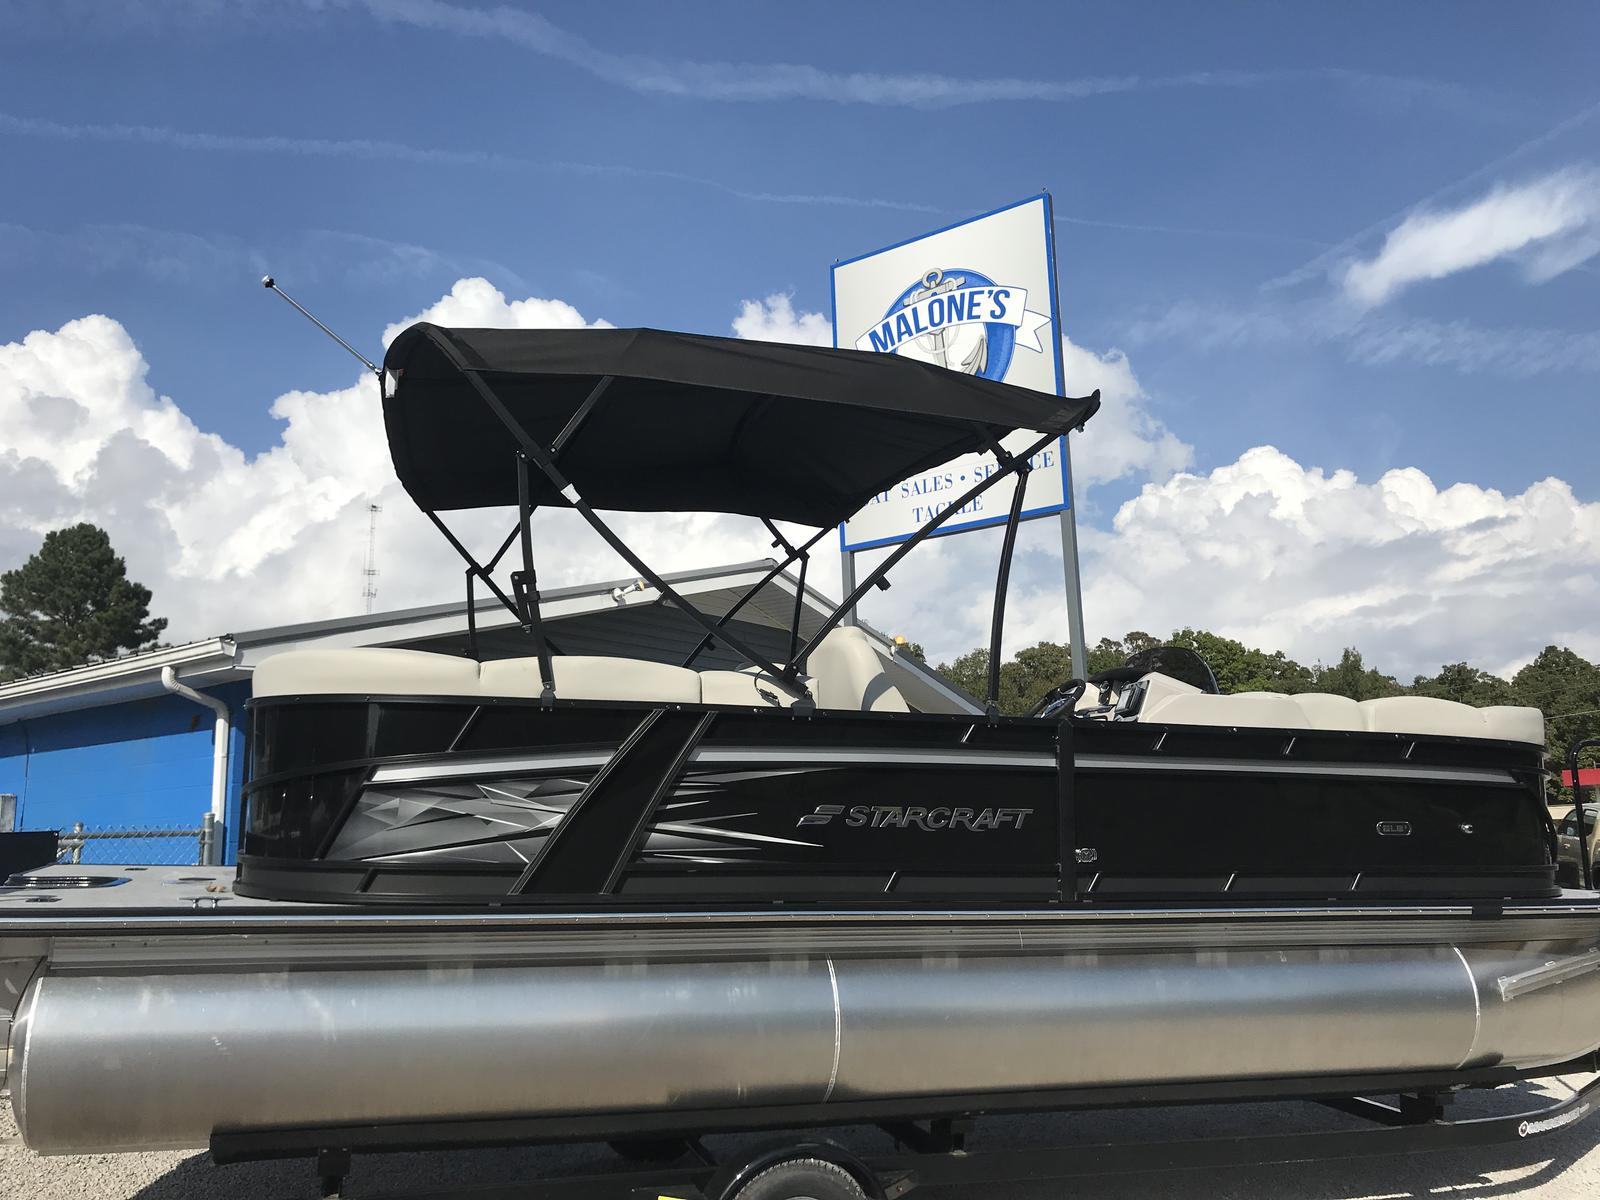 2019 Starcraft SLS-3 for sale in Buchanan, TN  Malone's